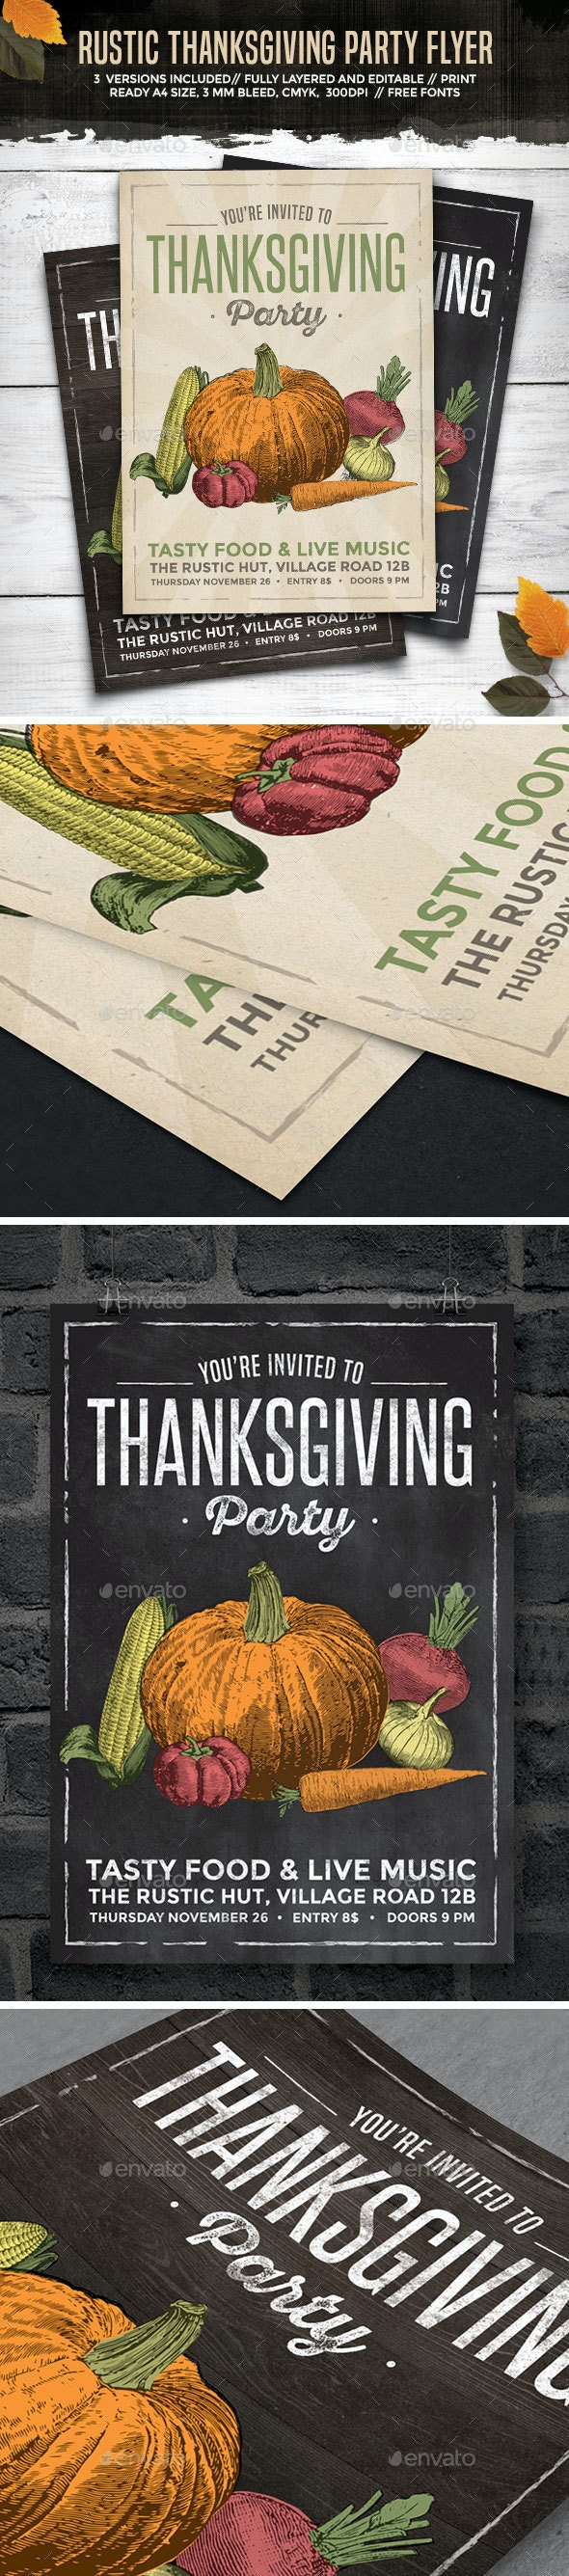 Rustic Thanksgiving Party Flyer - Holidays Events